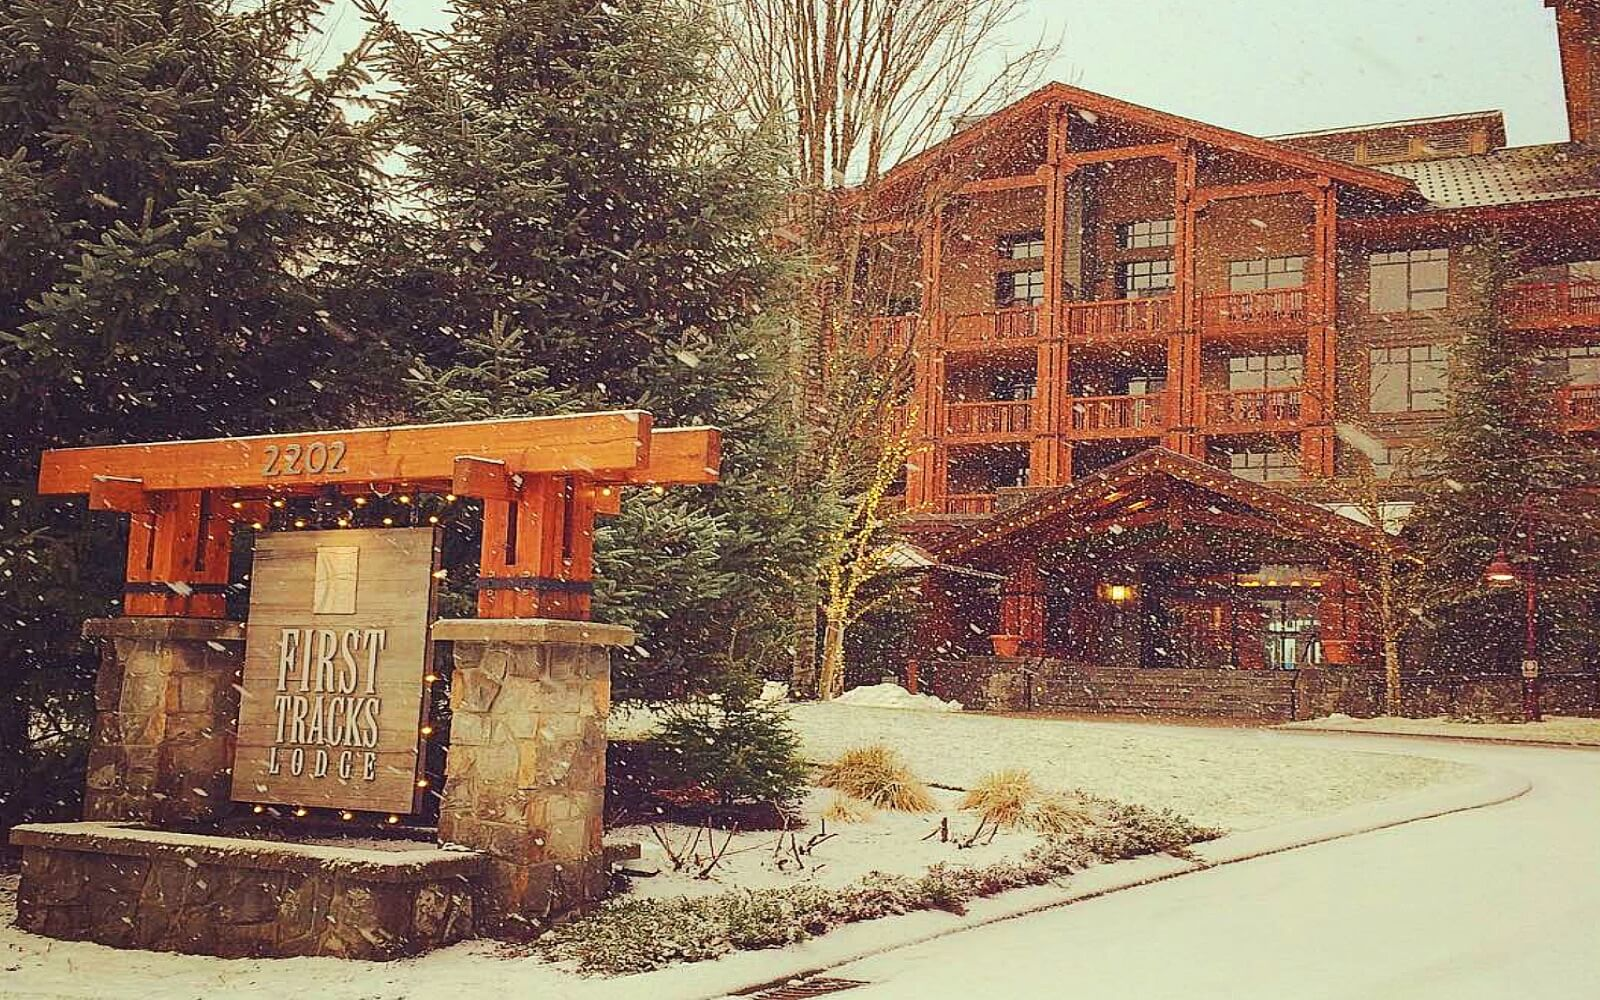 The entrance to the First Track Lodge, Whistler